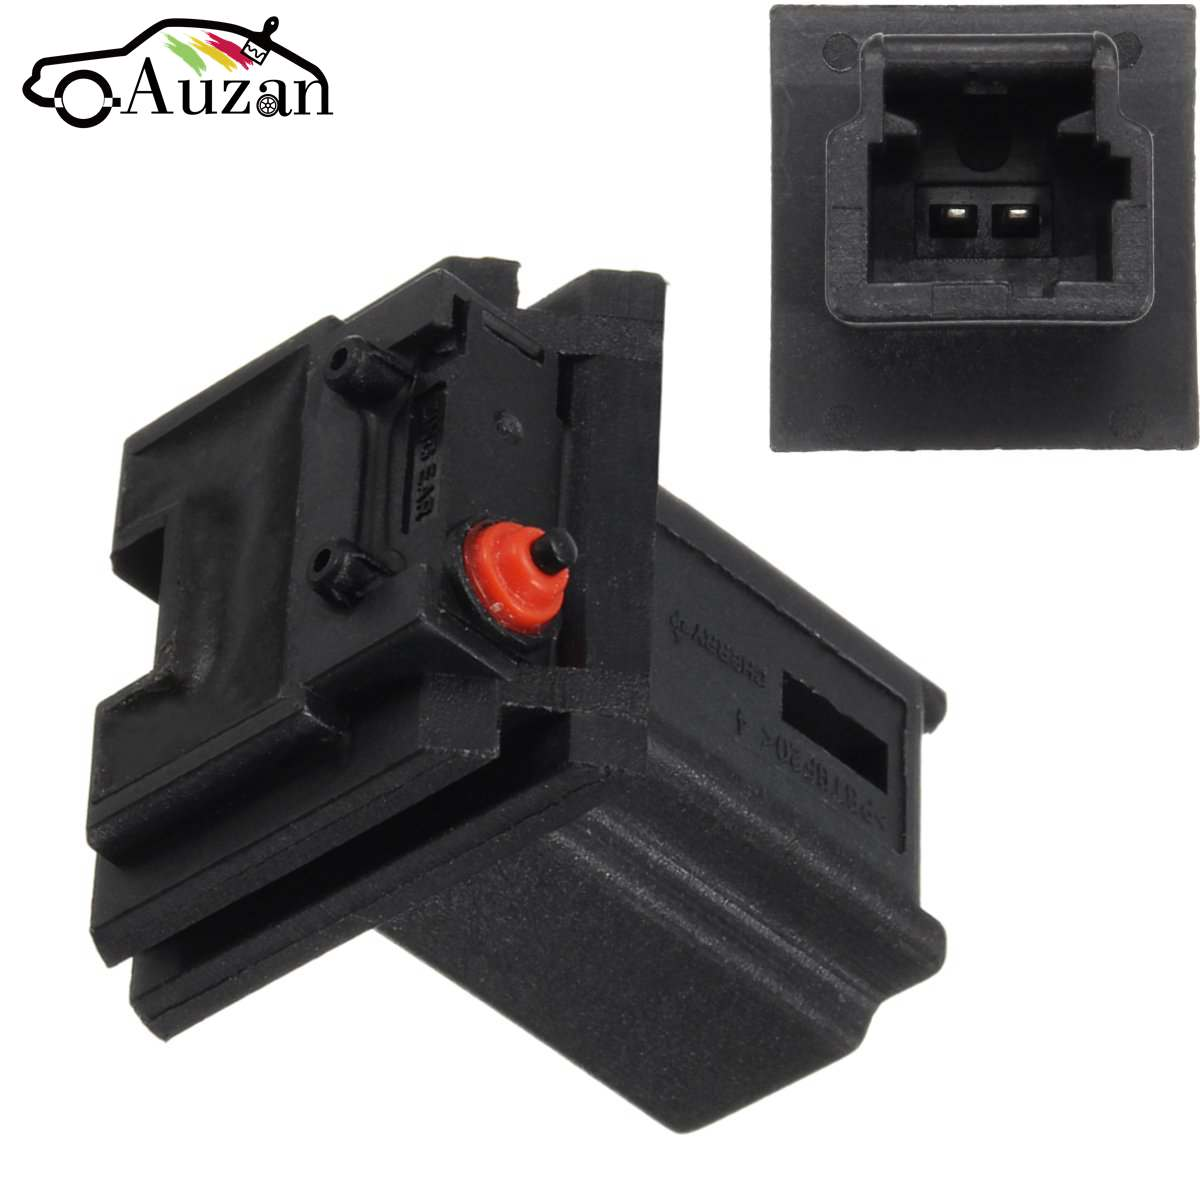 Black Tailgate Boot Micro Switch For Citroen C3 C4 C3 for Peugeot 206 307 308 407 6554V5